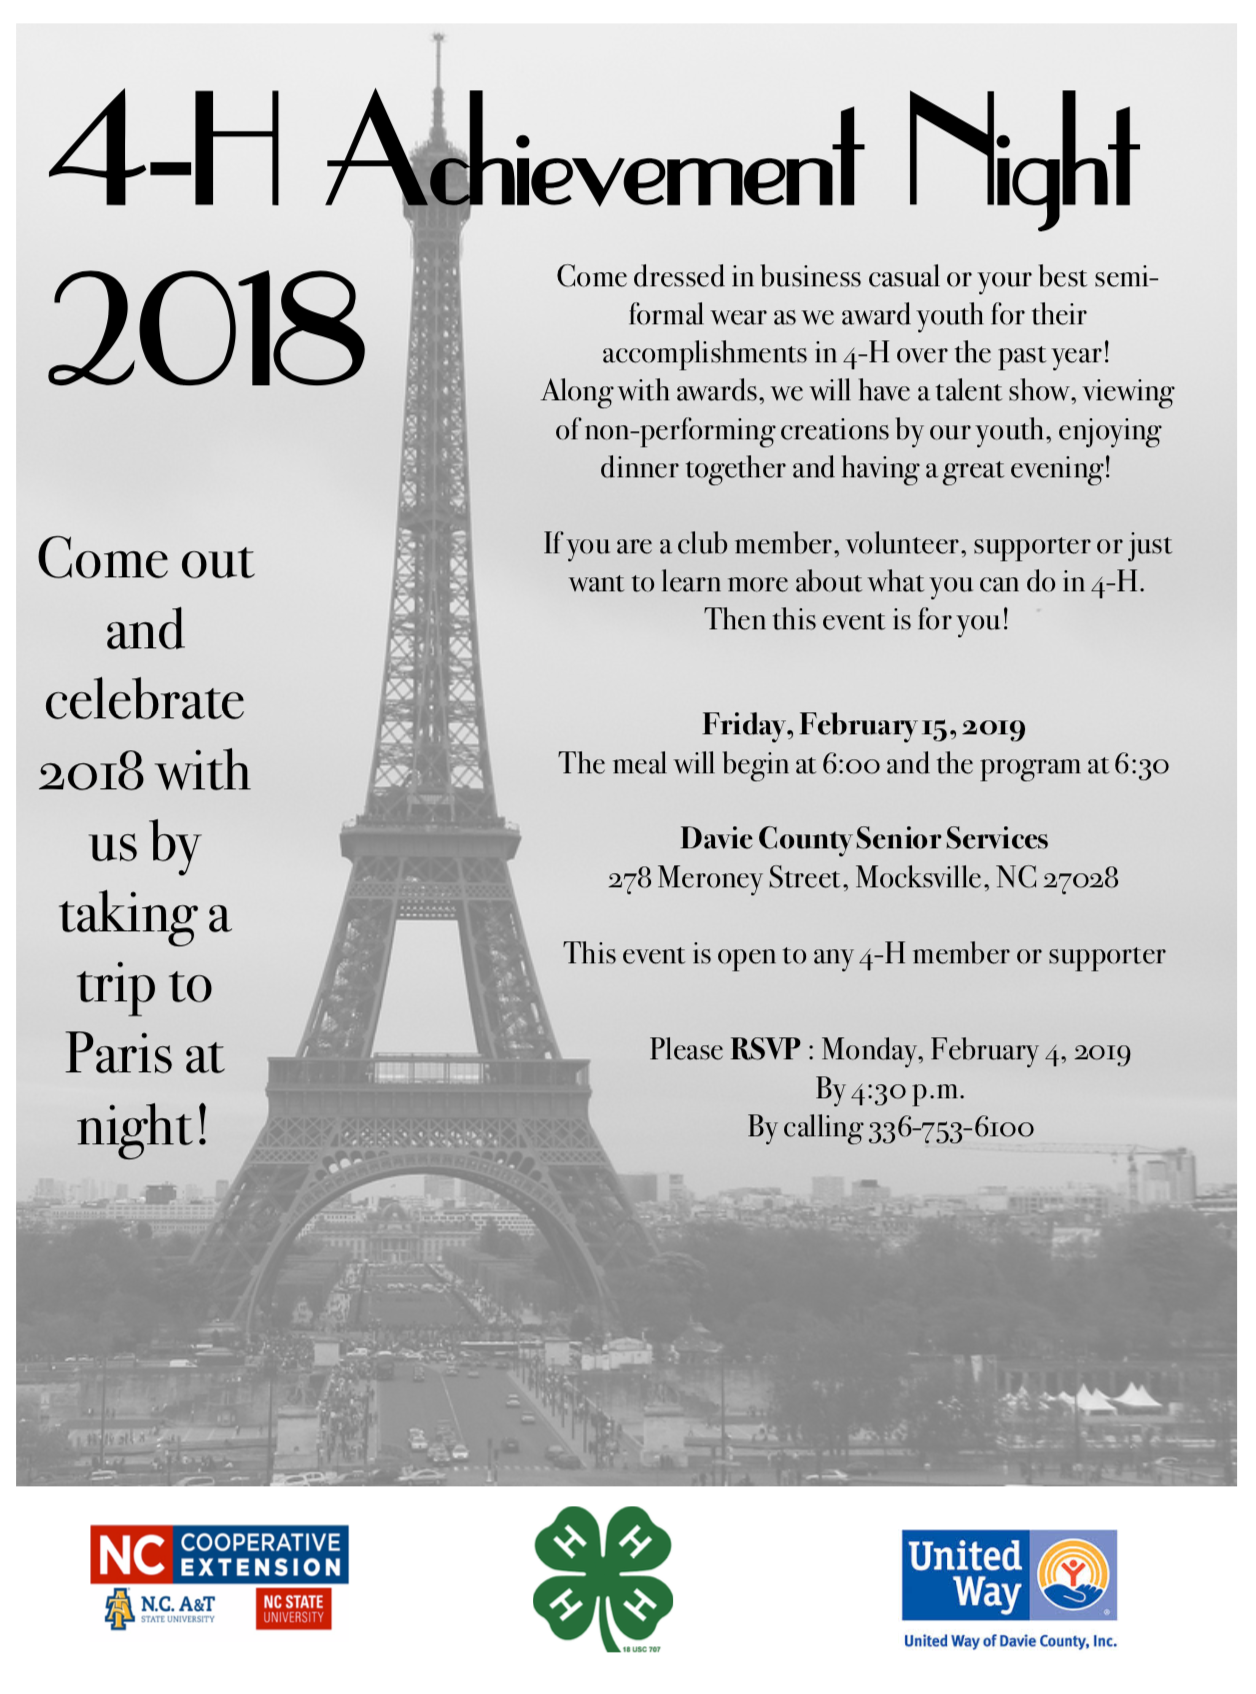 a greyed out photo of the Eiffel Tower with the sky line to the right. On top there is text that reads: 4-H Achievement Night 2018 come out and celebrate 2018 with us by taking a trip to Paris at night! Dress in business casual or semi formal and we will enjoy at meal at 6 p.m. followed by a program starting at 6:30 p.m. This event is on Friday February 15, 2019 at the Davie County Senior Services on 278 Meroney St. Mocksville, NC 27028 RSVP by Monday, February 4th at 4:30 p.m. This event is open to all 4-H members and supporters